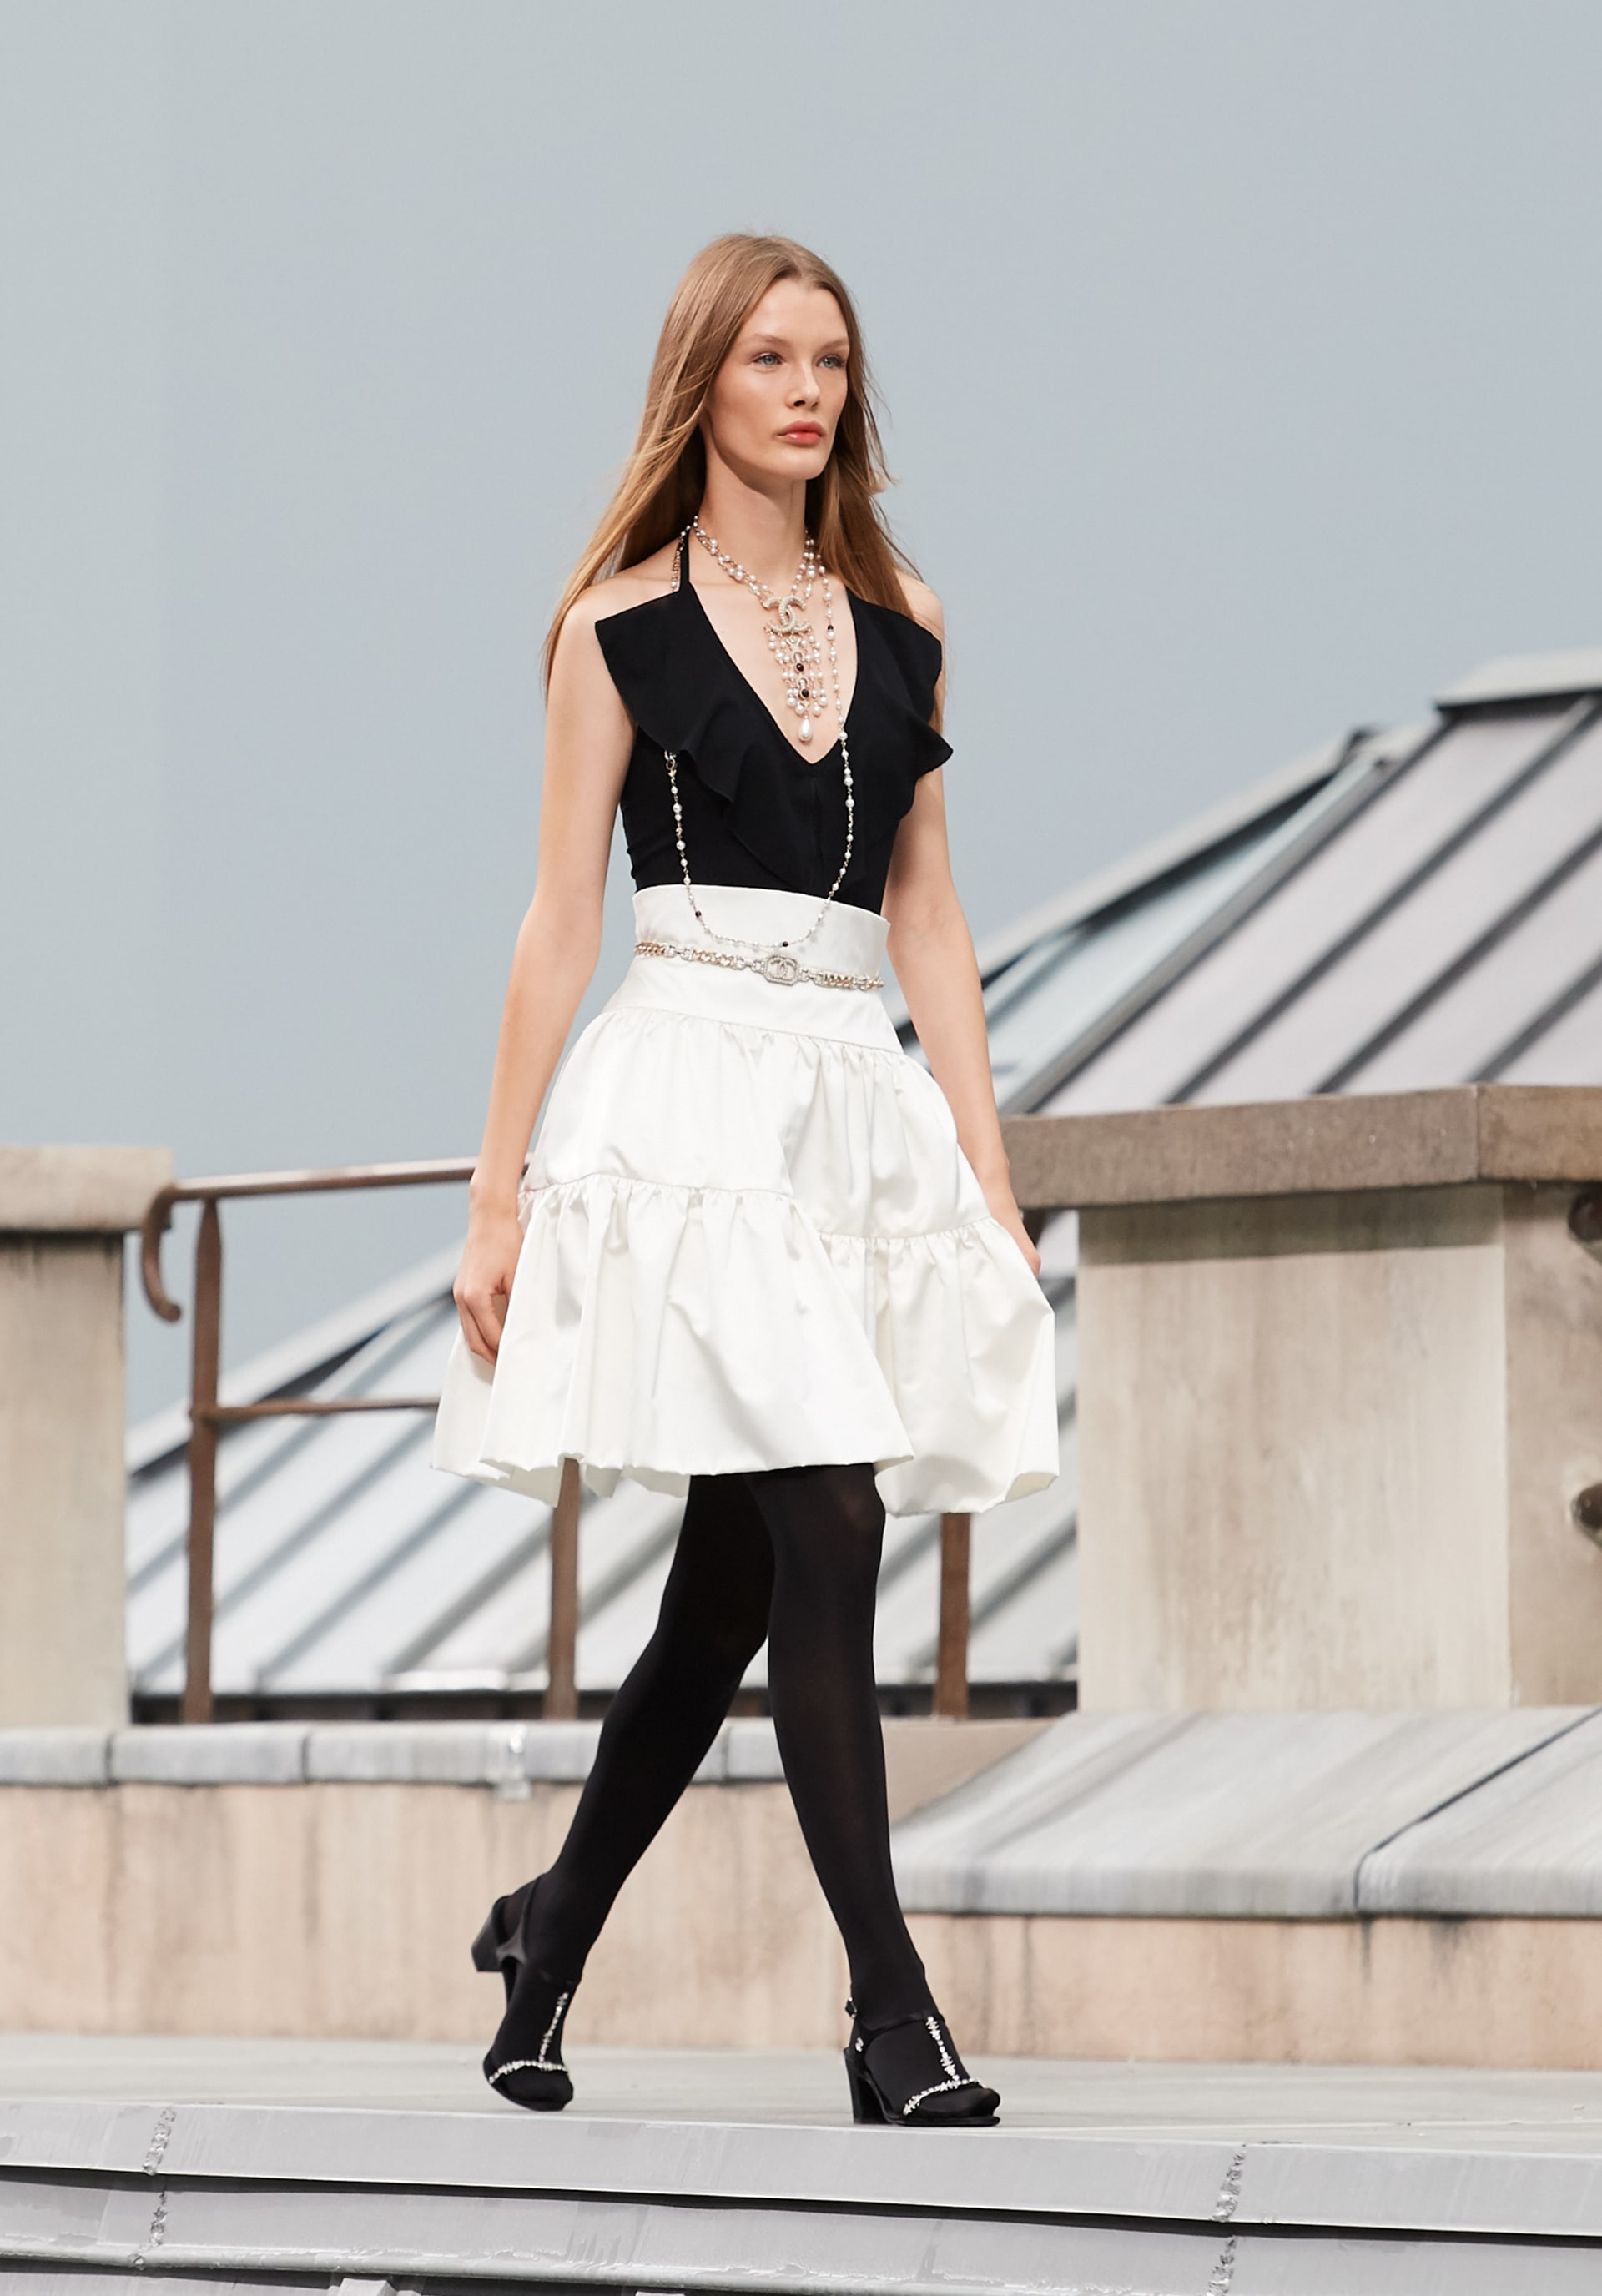 View 1 - Look 75 - Spring-Summer 2020 - see full sized version